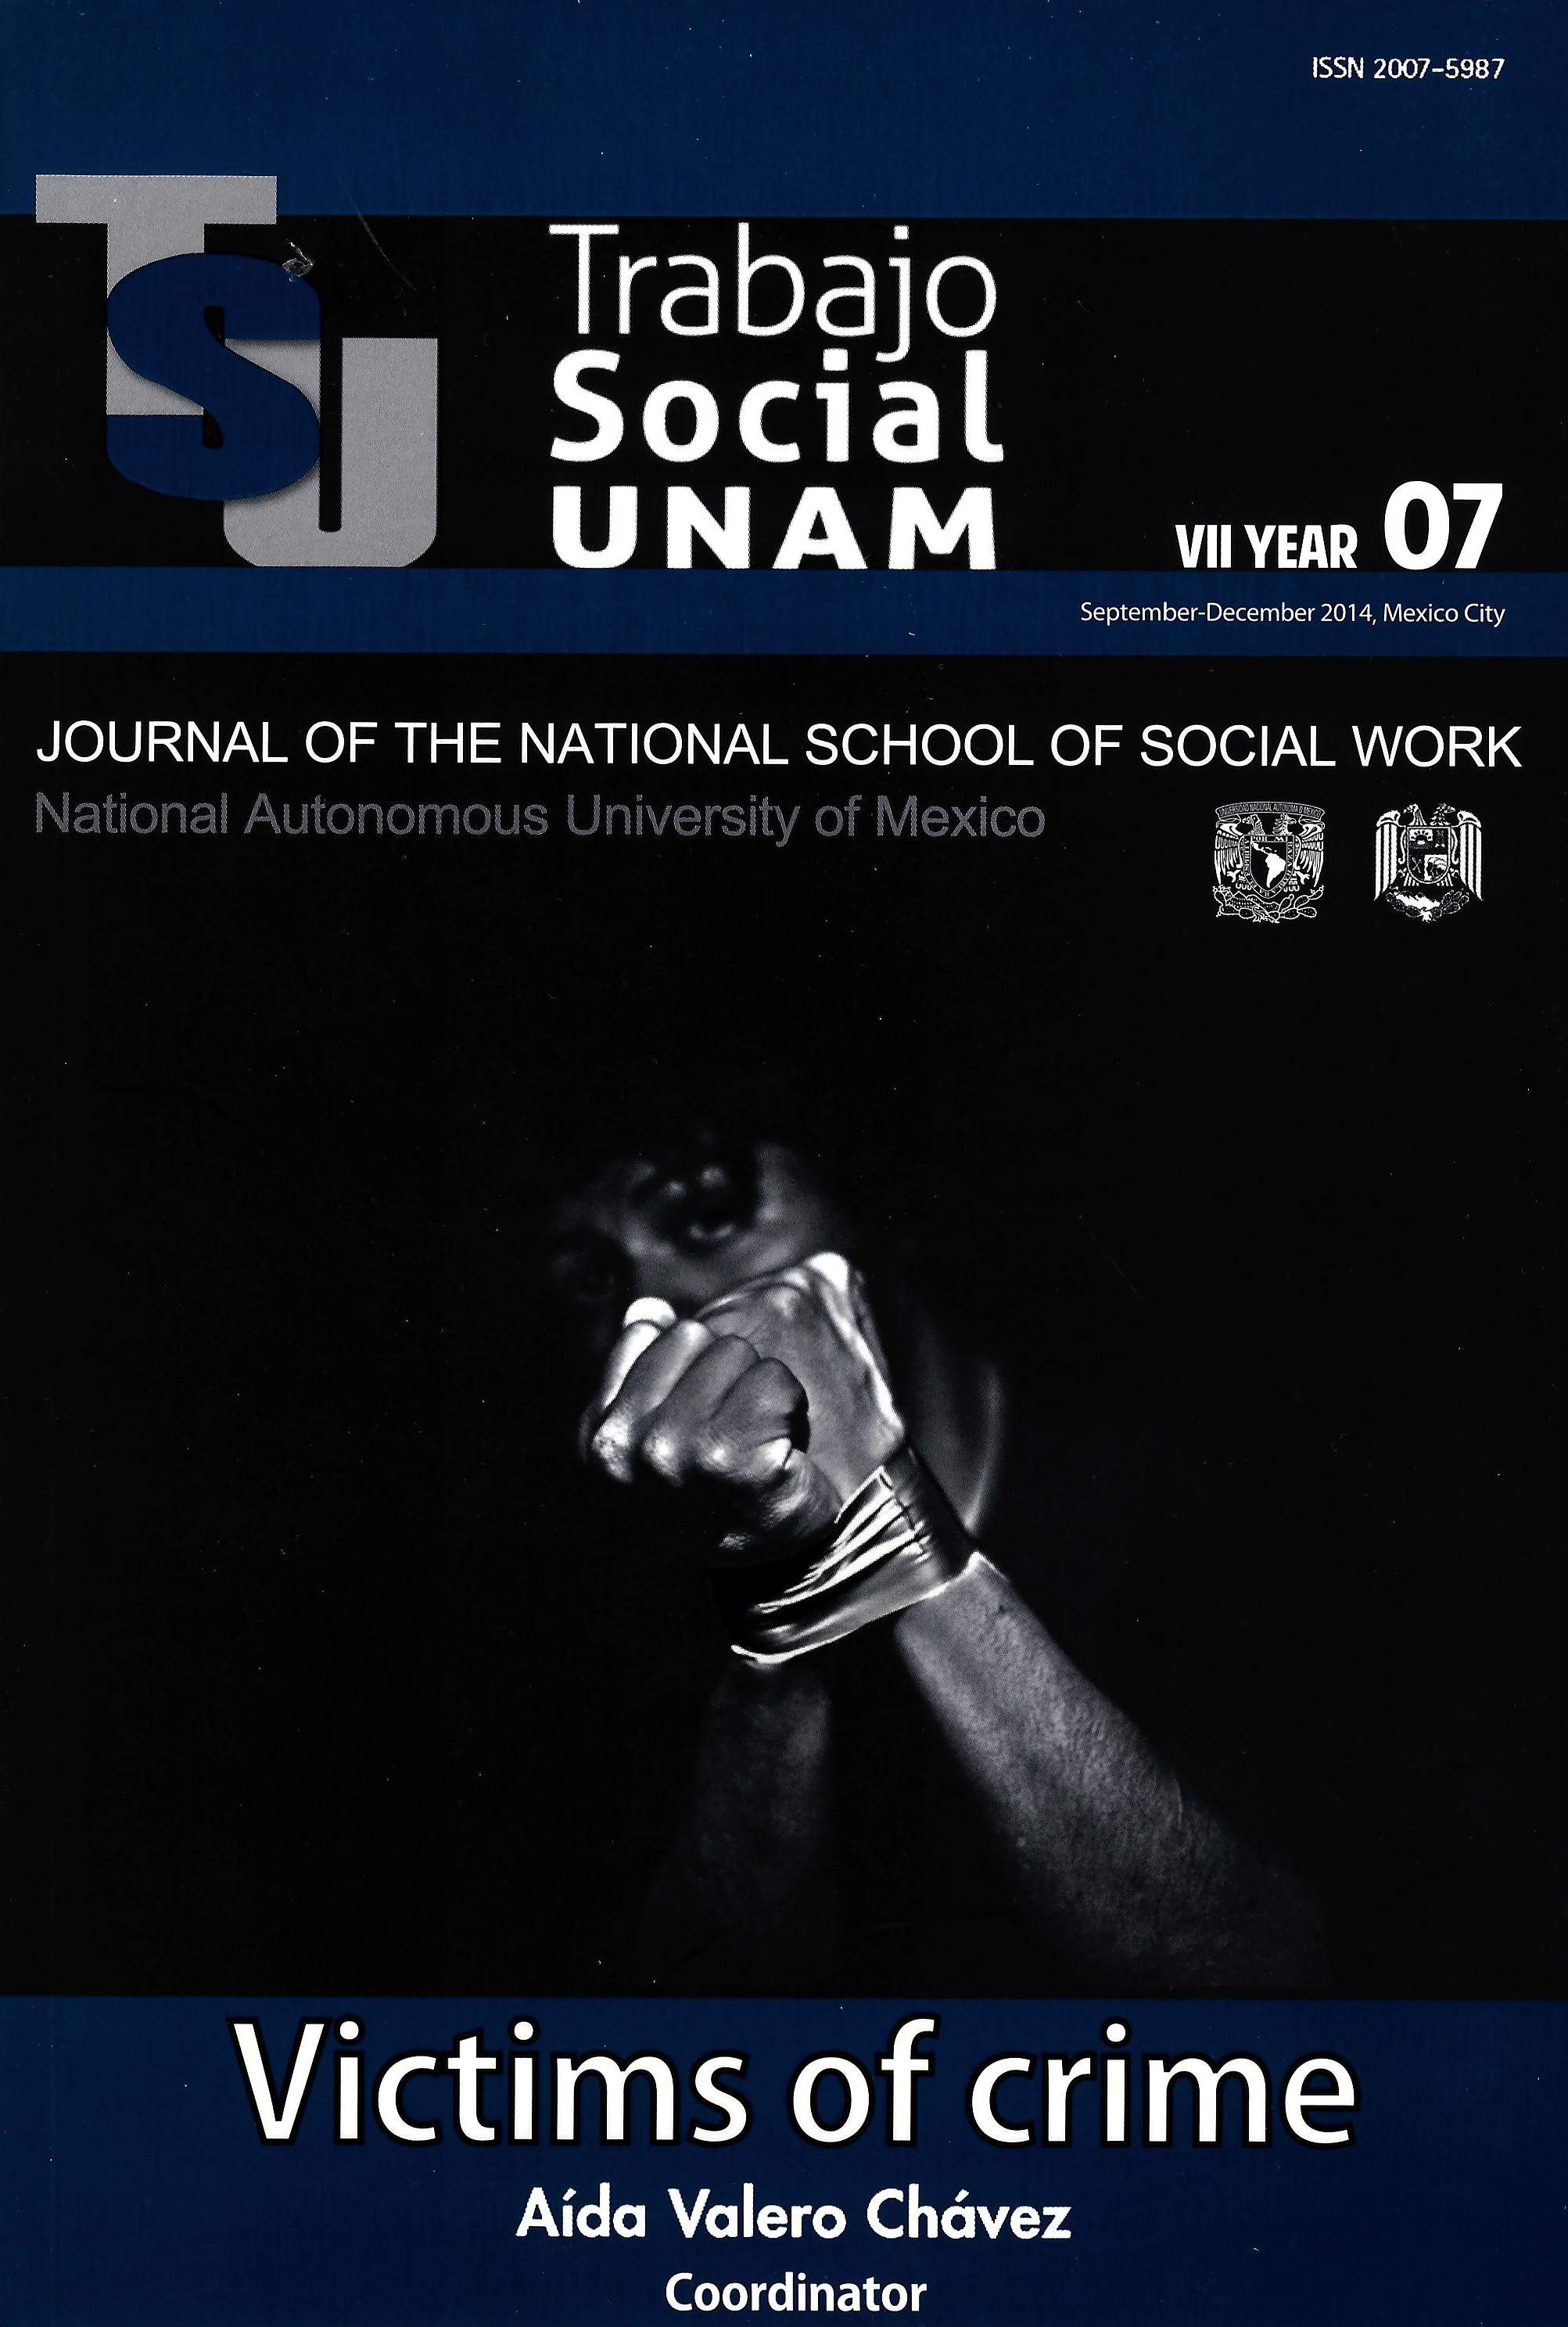 Trabajo Social UNAM. VII year, 07, sep-dec, 2014